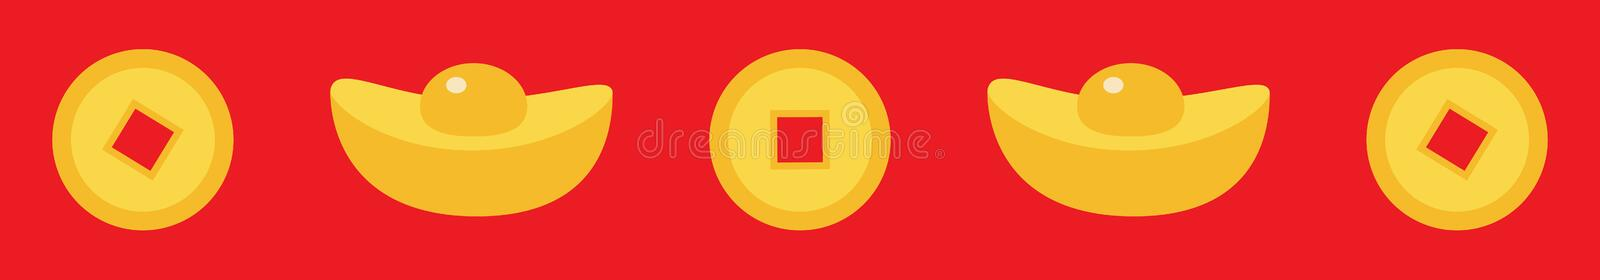 Chinese gold ingot coin line set. China money square centre. Golden with hole. Happy New Year symbol atribute. Red background. stock illustration